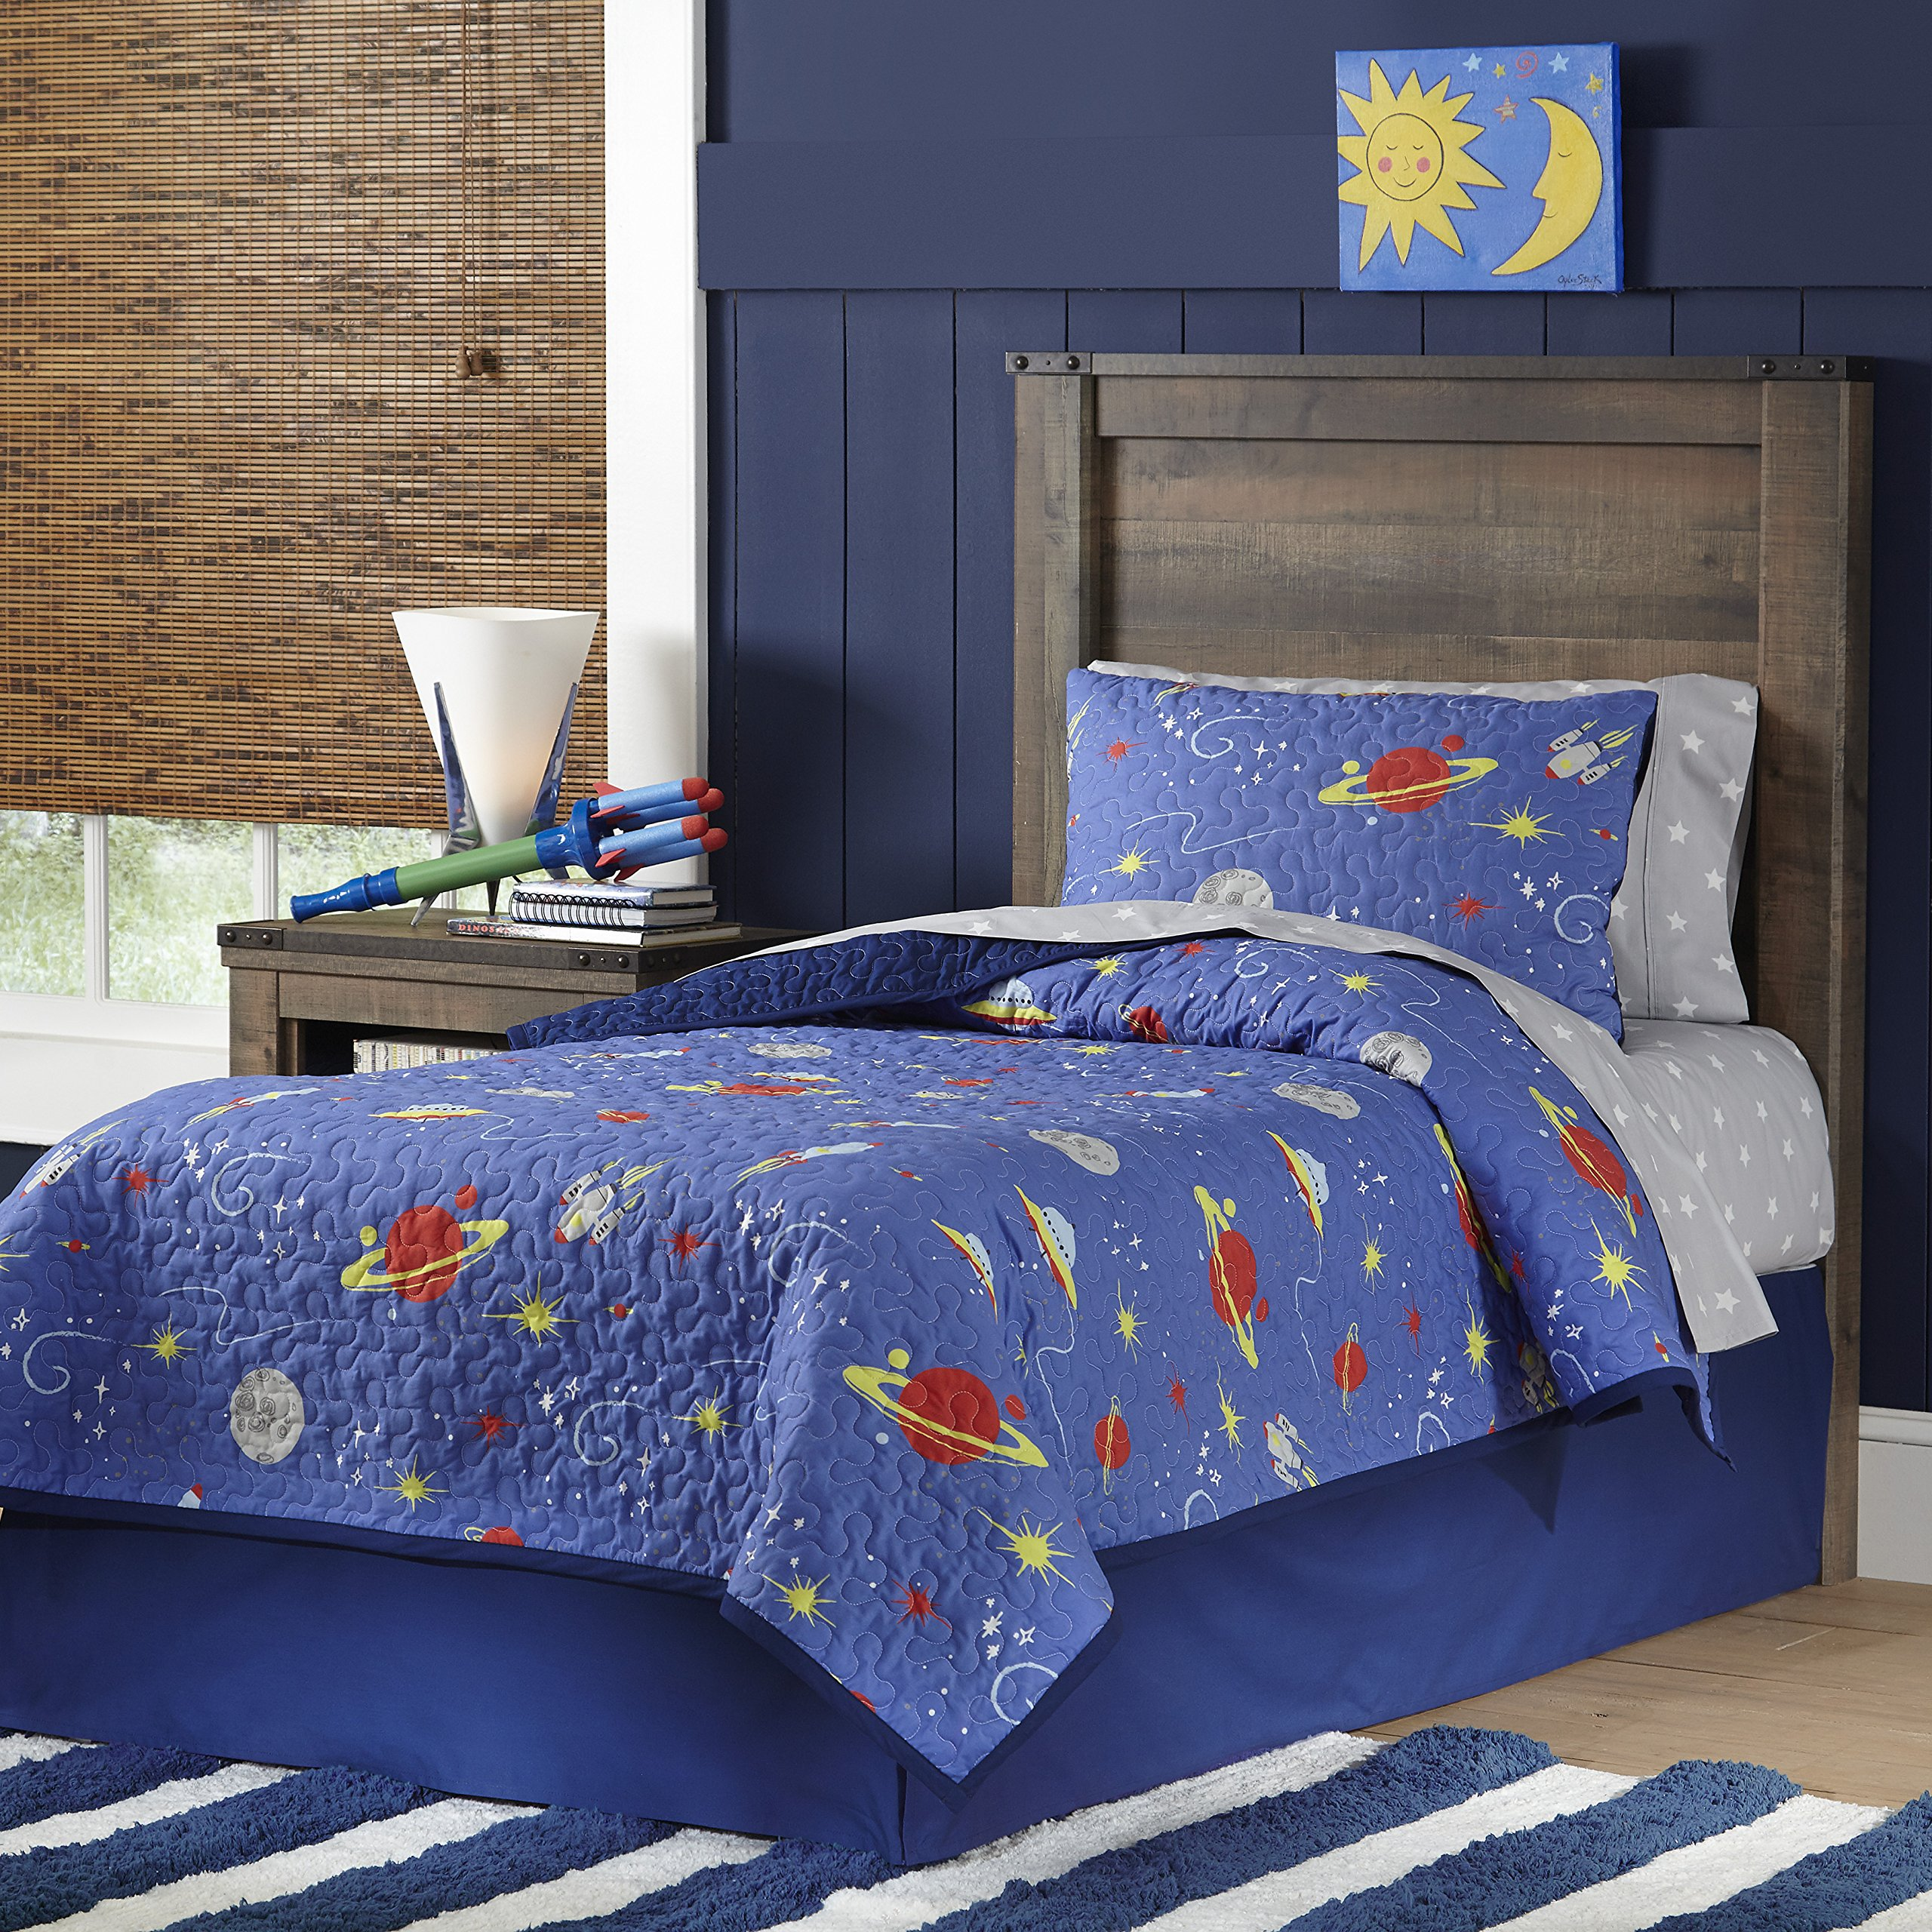 Lullaby Bedding Space Twin Cotton Printed 2 Piece Quilt Set,